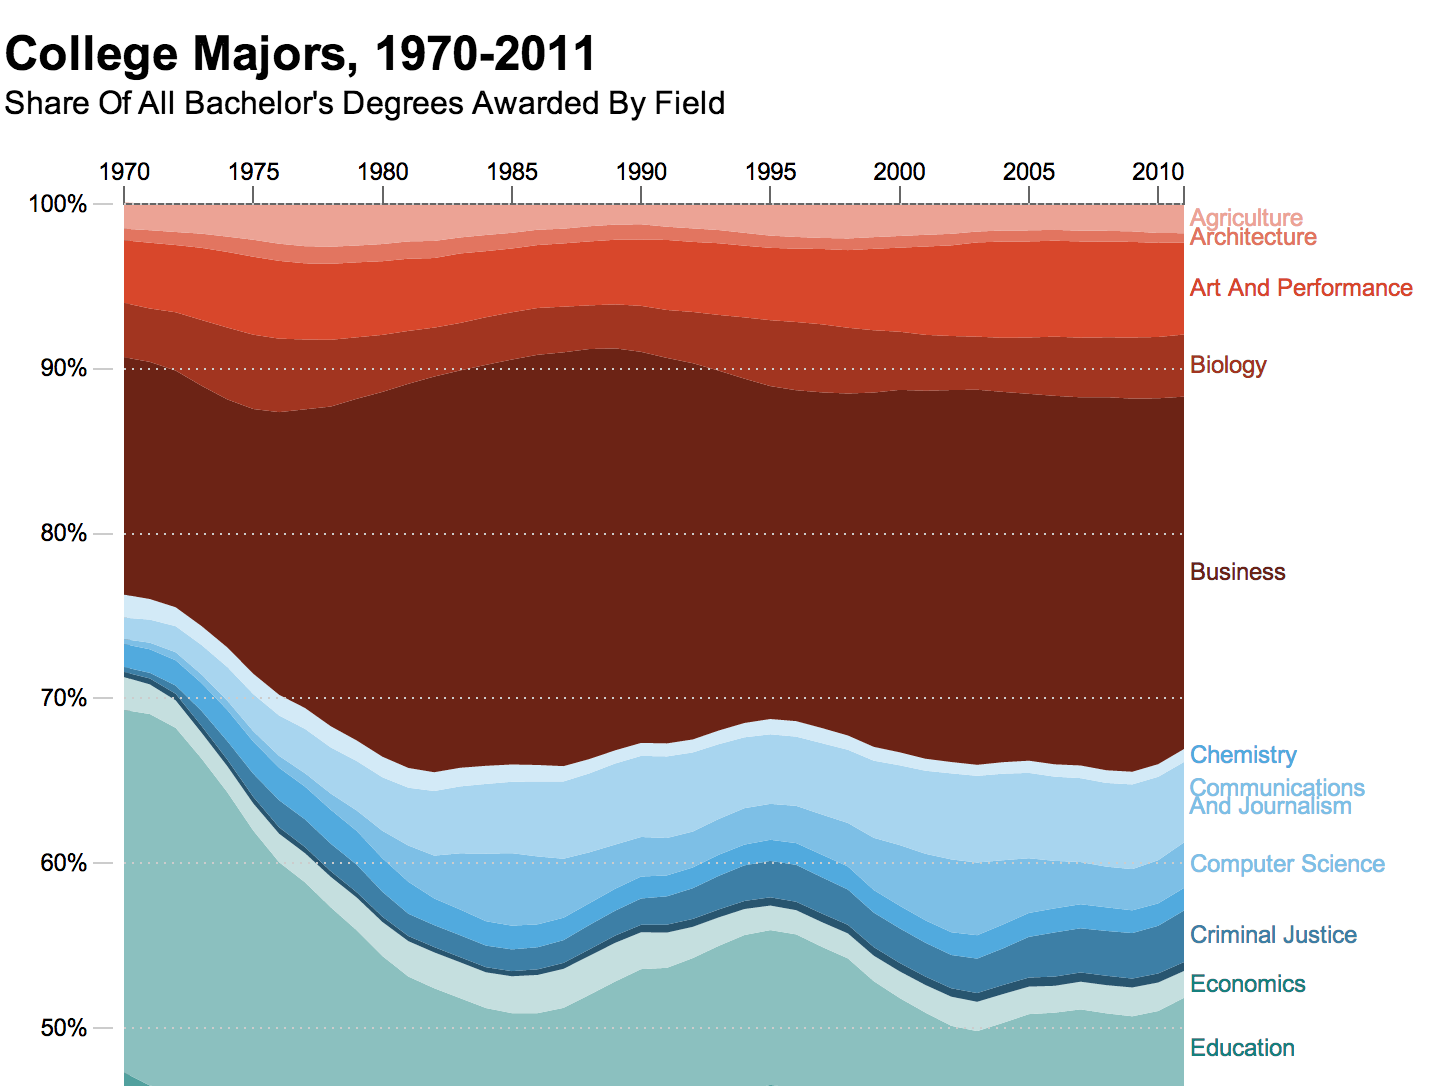 4 Decades Of College Degrees In 1 Graph